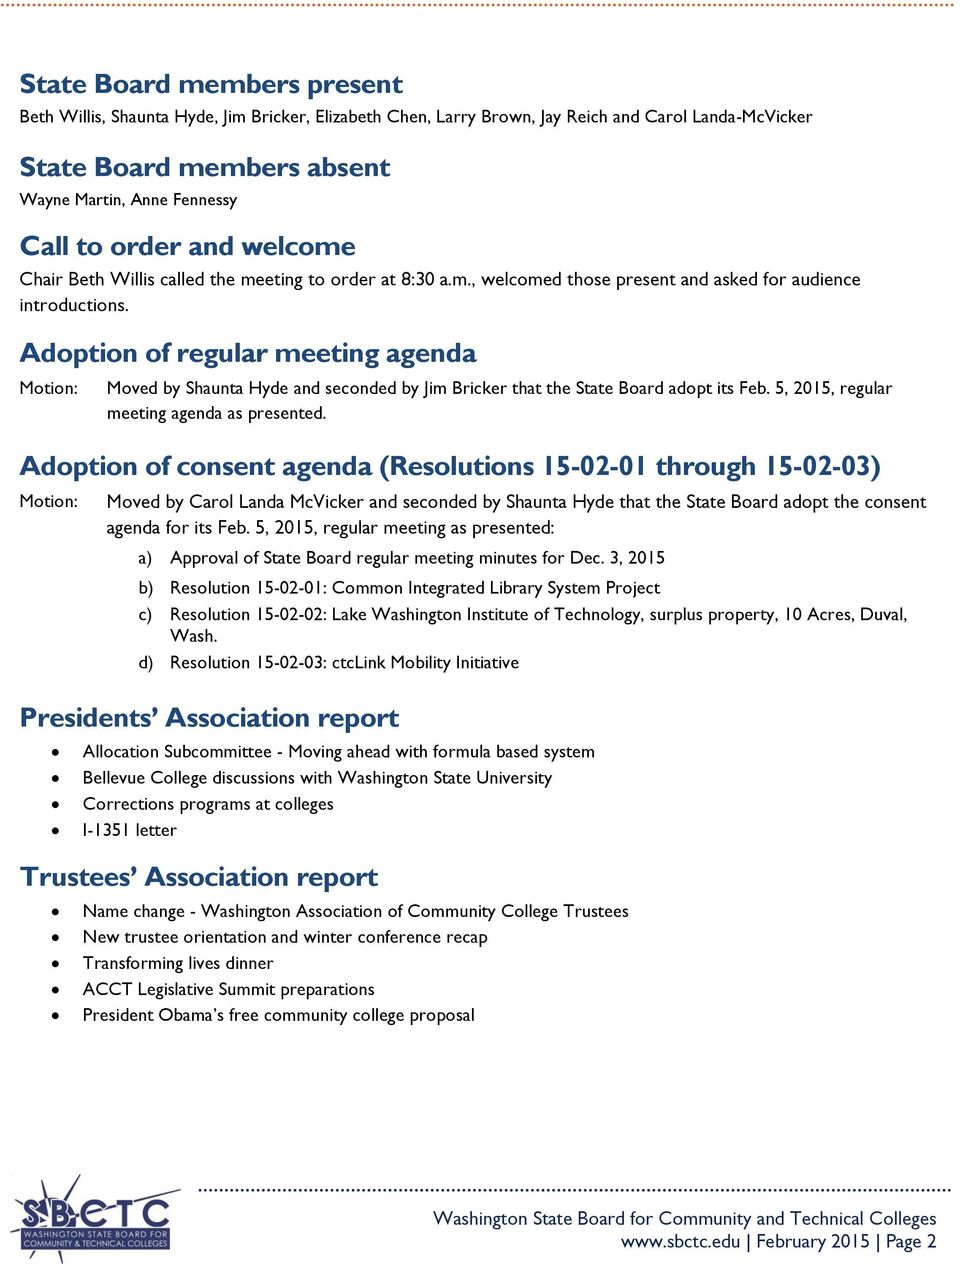 Adoption of regular meeting agenda Motion: Moved by Shaunta Hyde and seconded by Jim Bricker that the State Board adopt its Feb. 5, 015, regular meeting agenda as presented.